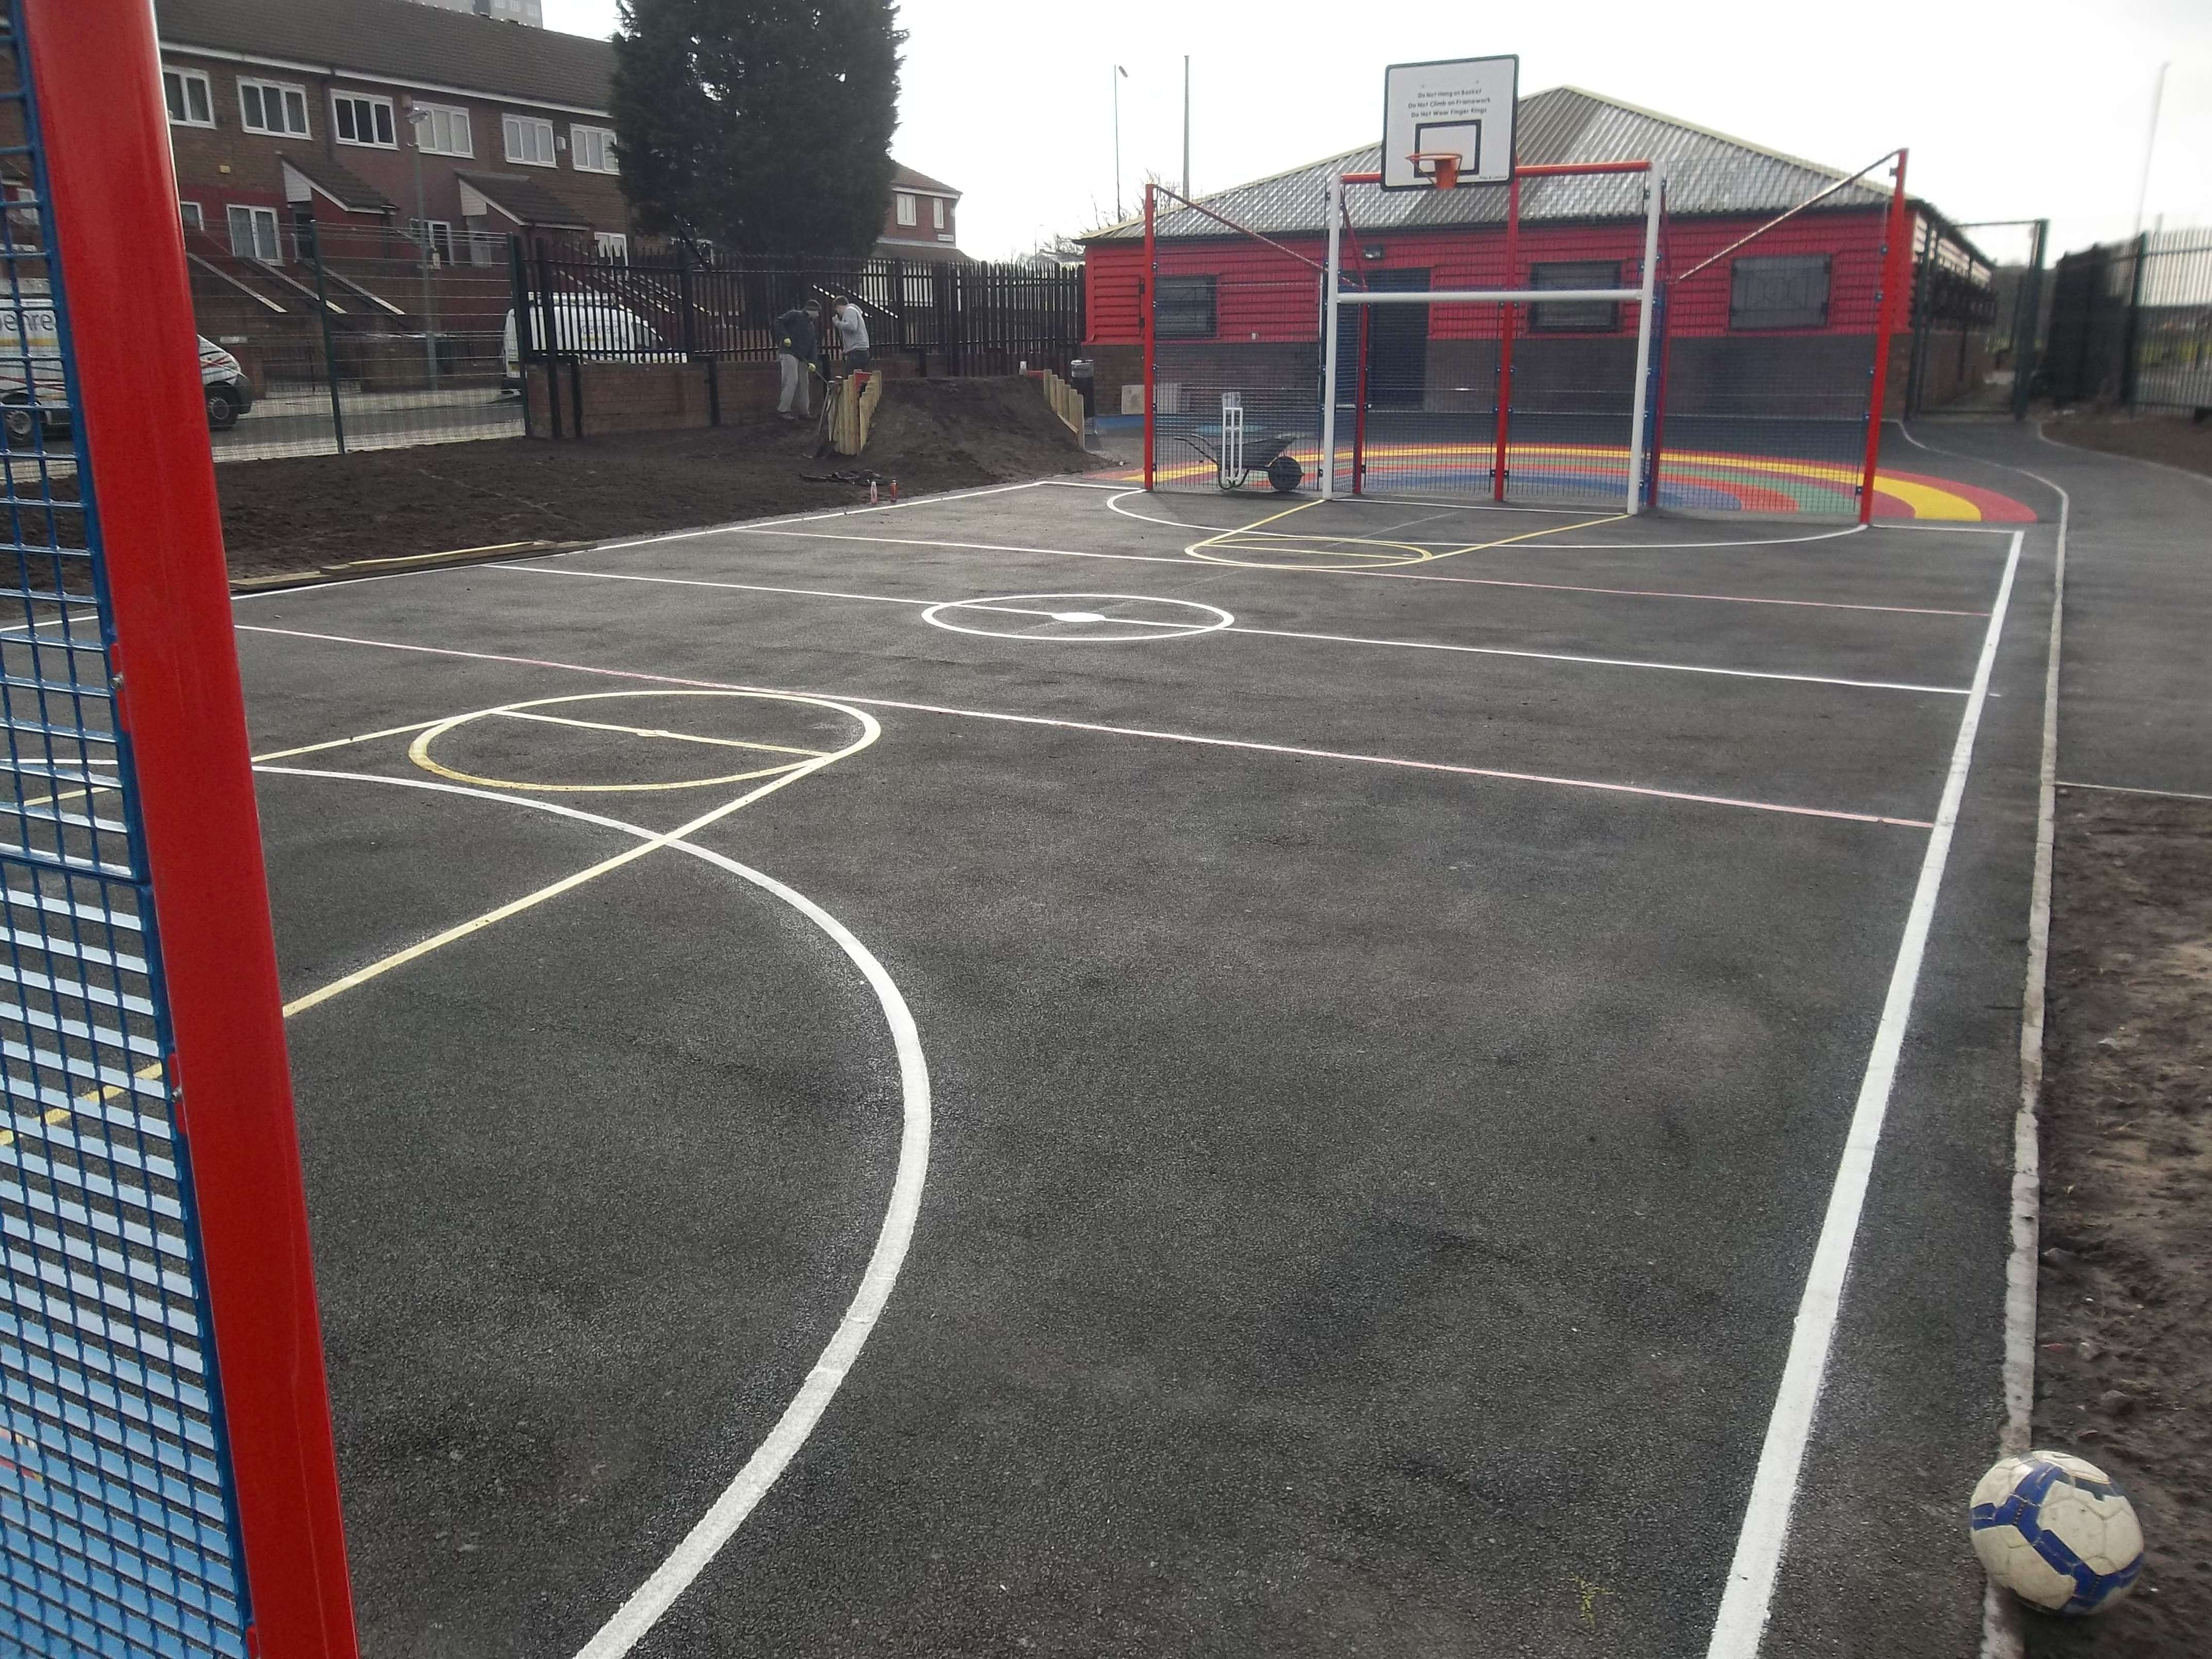 Basketball court built by Flanagan group for the community